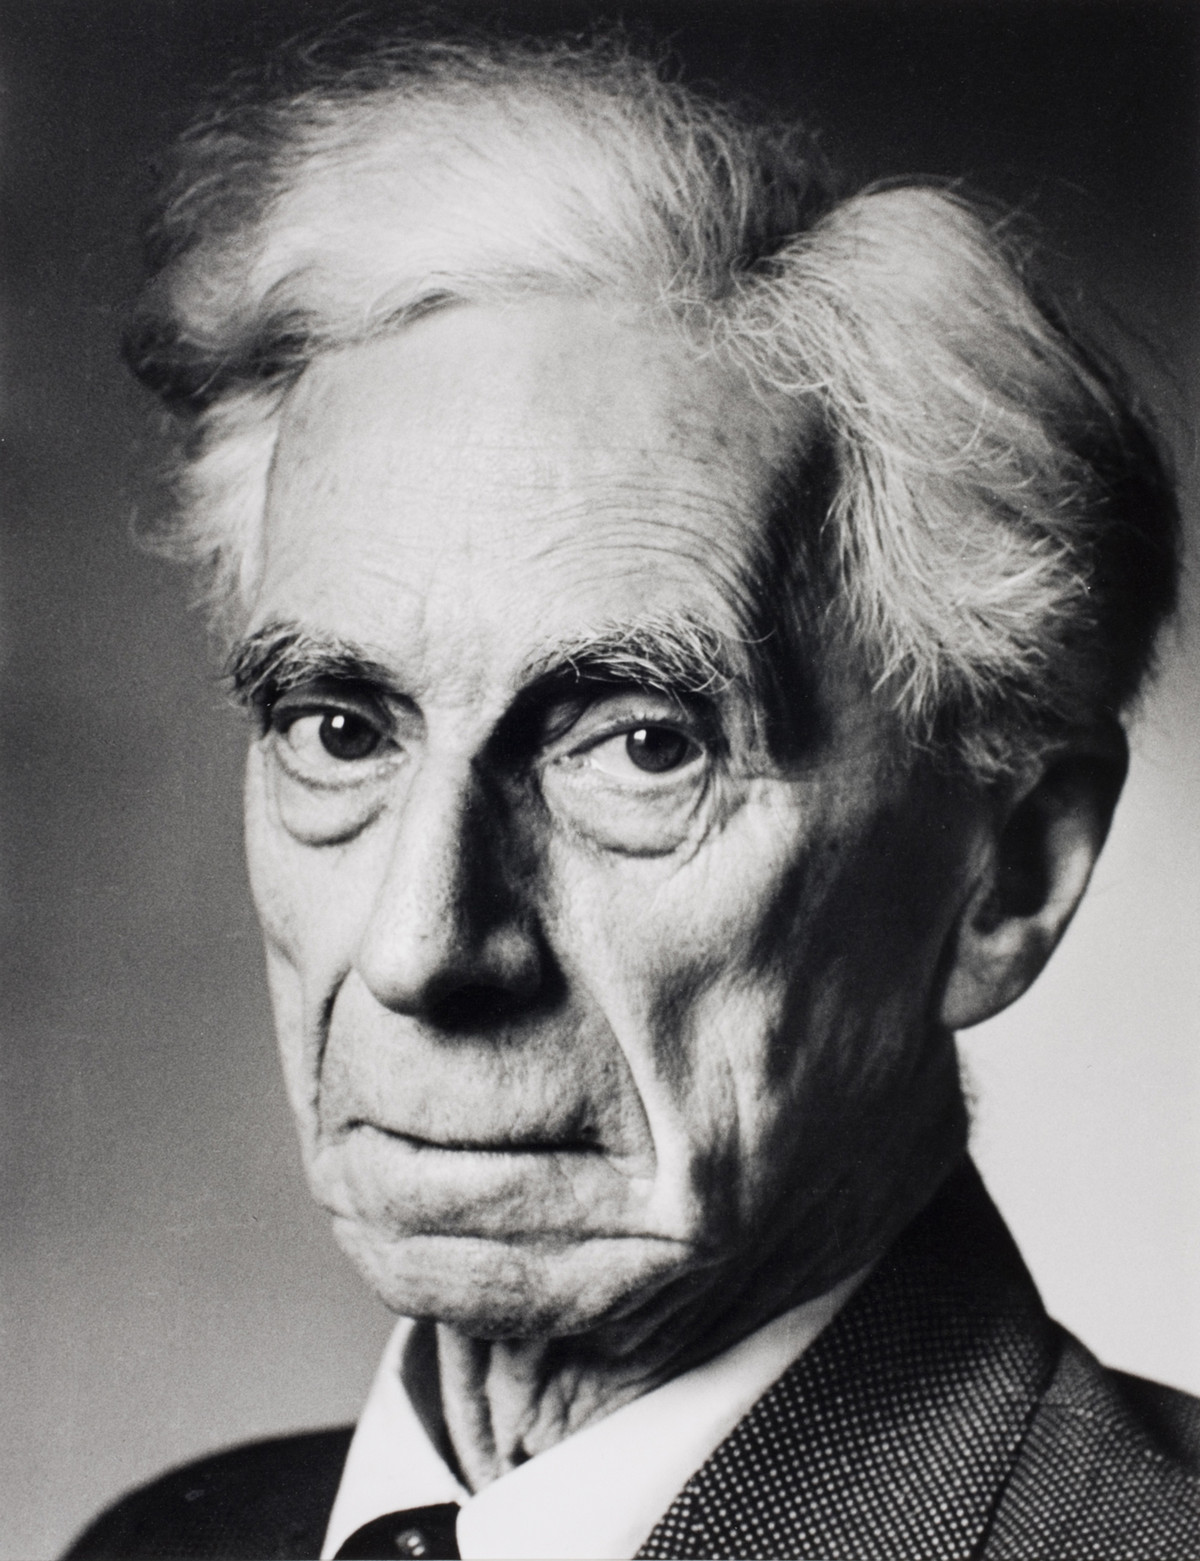 Bertrand Russell, London, England, 1951.